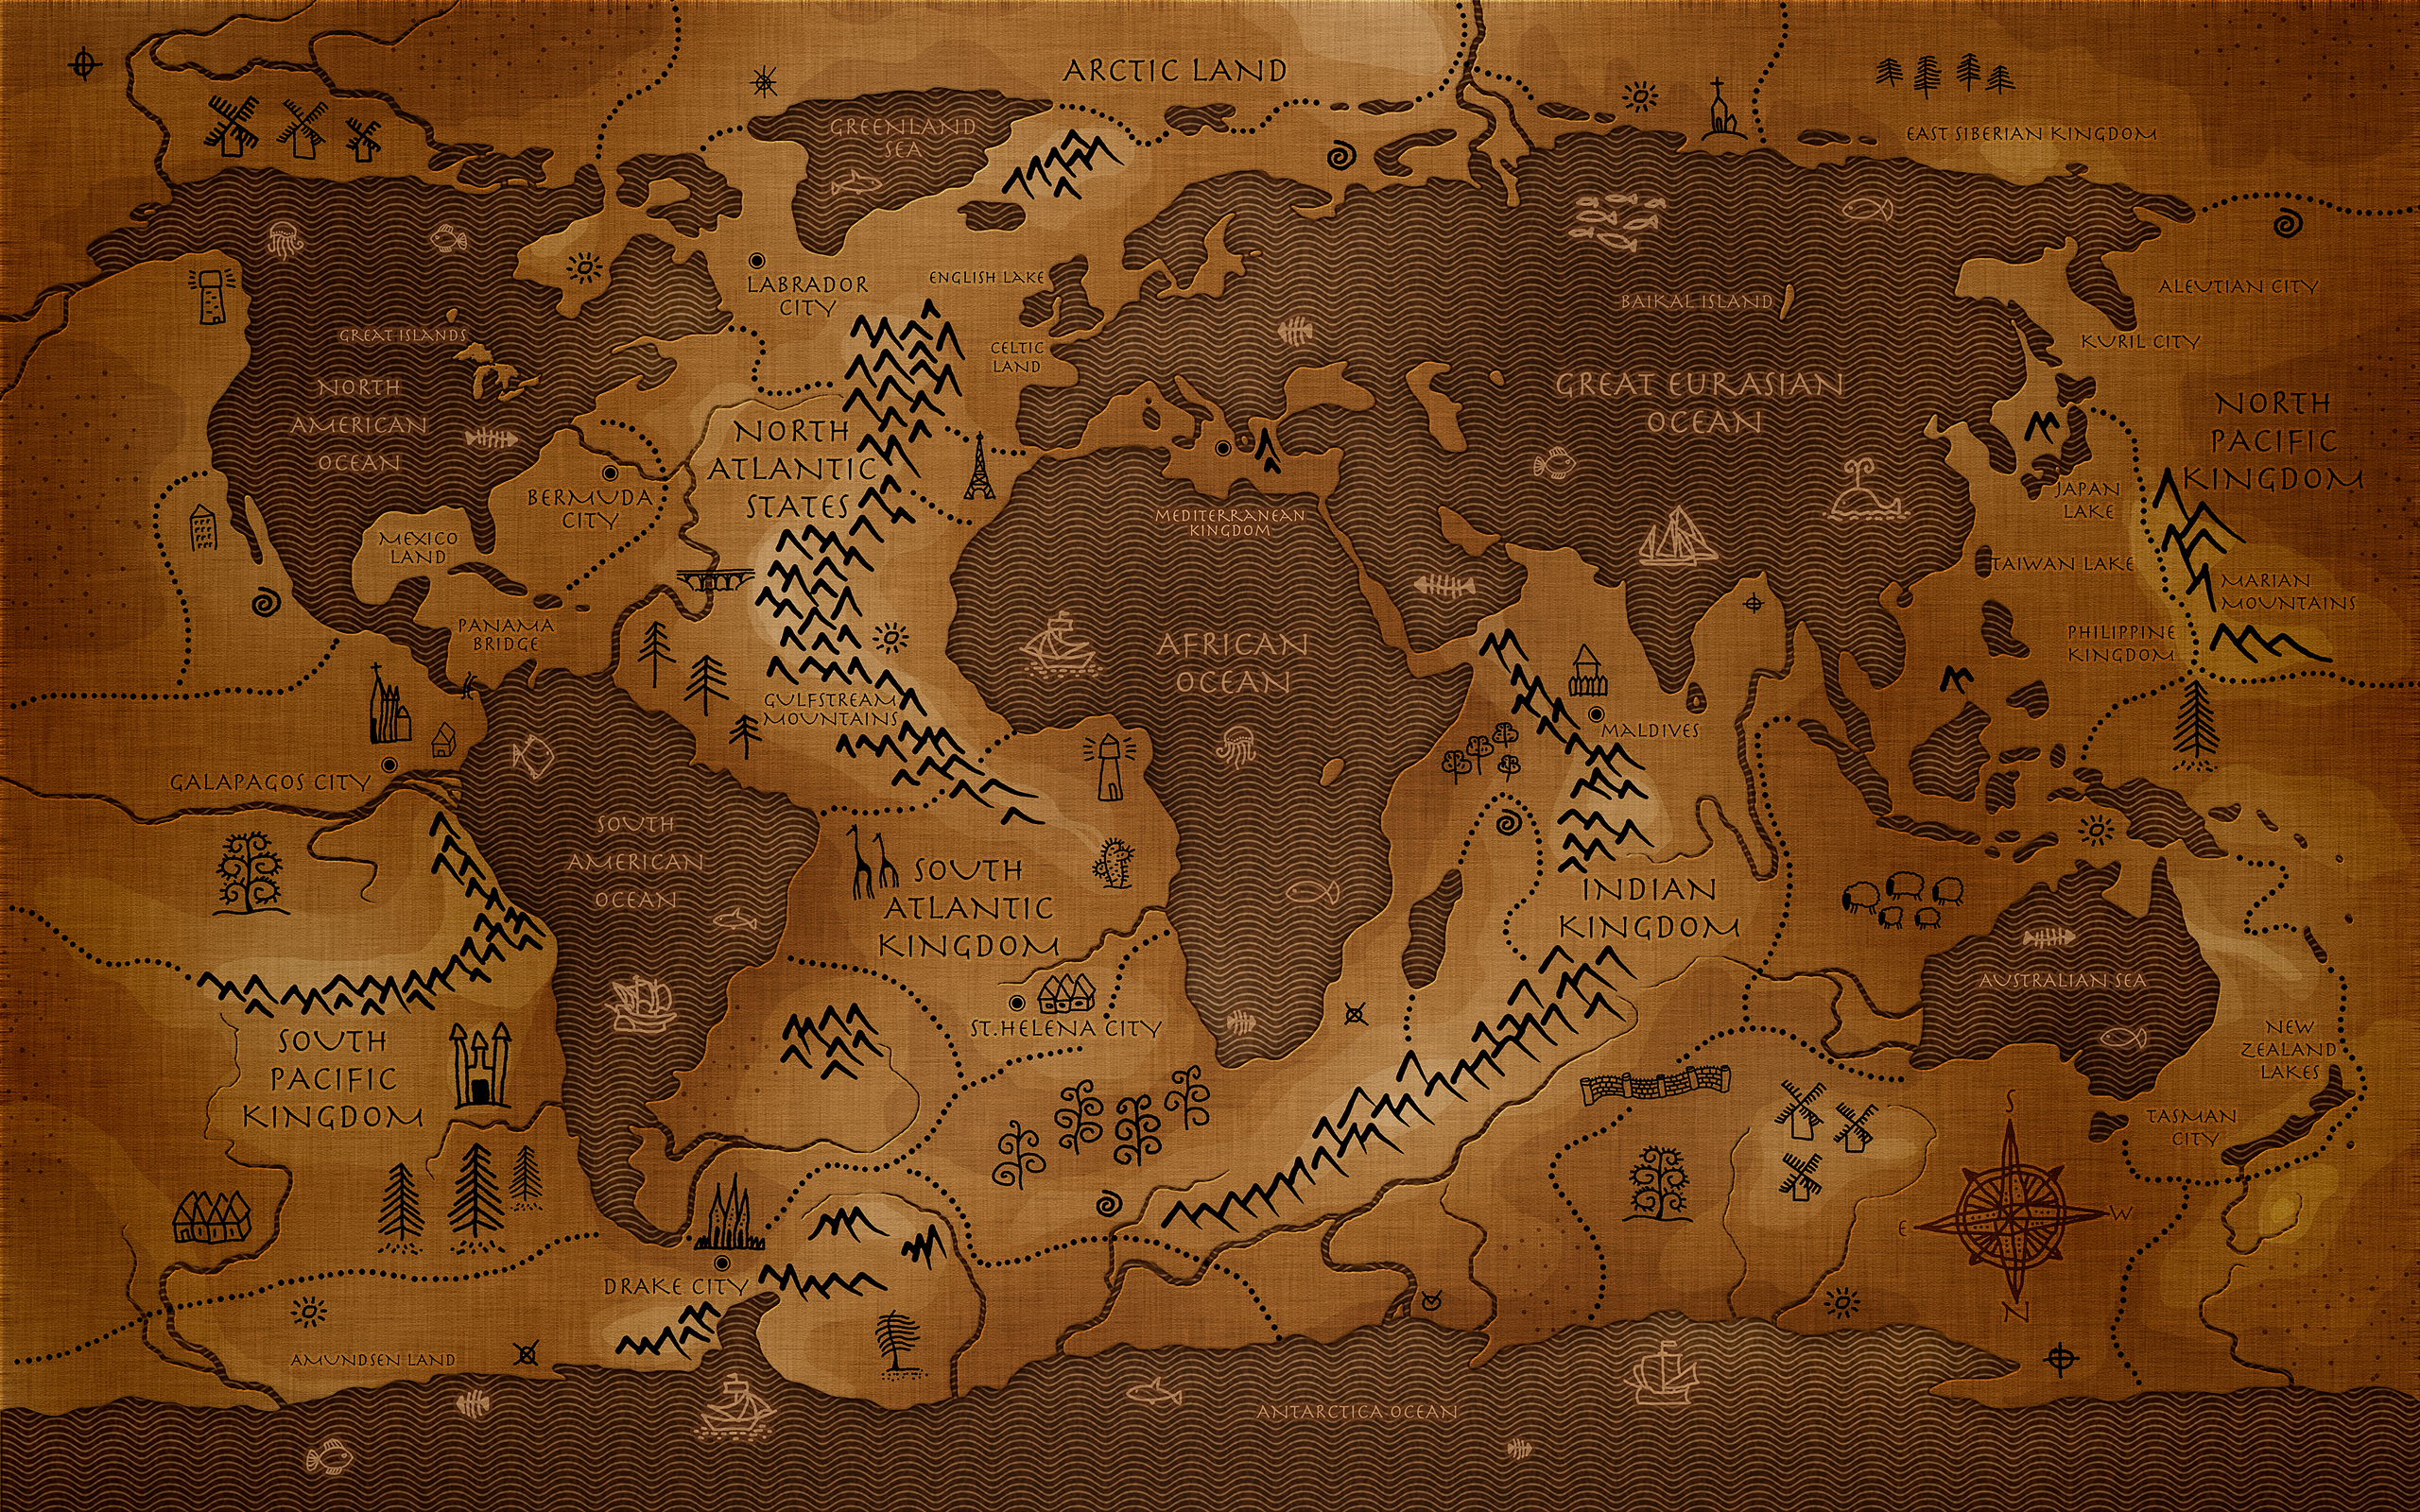 World map hd wallpaper wallpapersafari world map wallpapers hd wallpapers 2560x1600 gumiabroncs Images